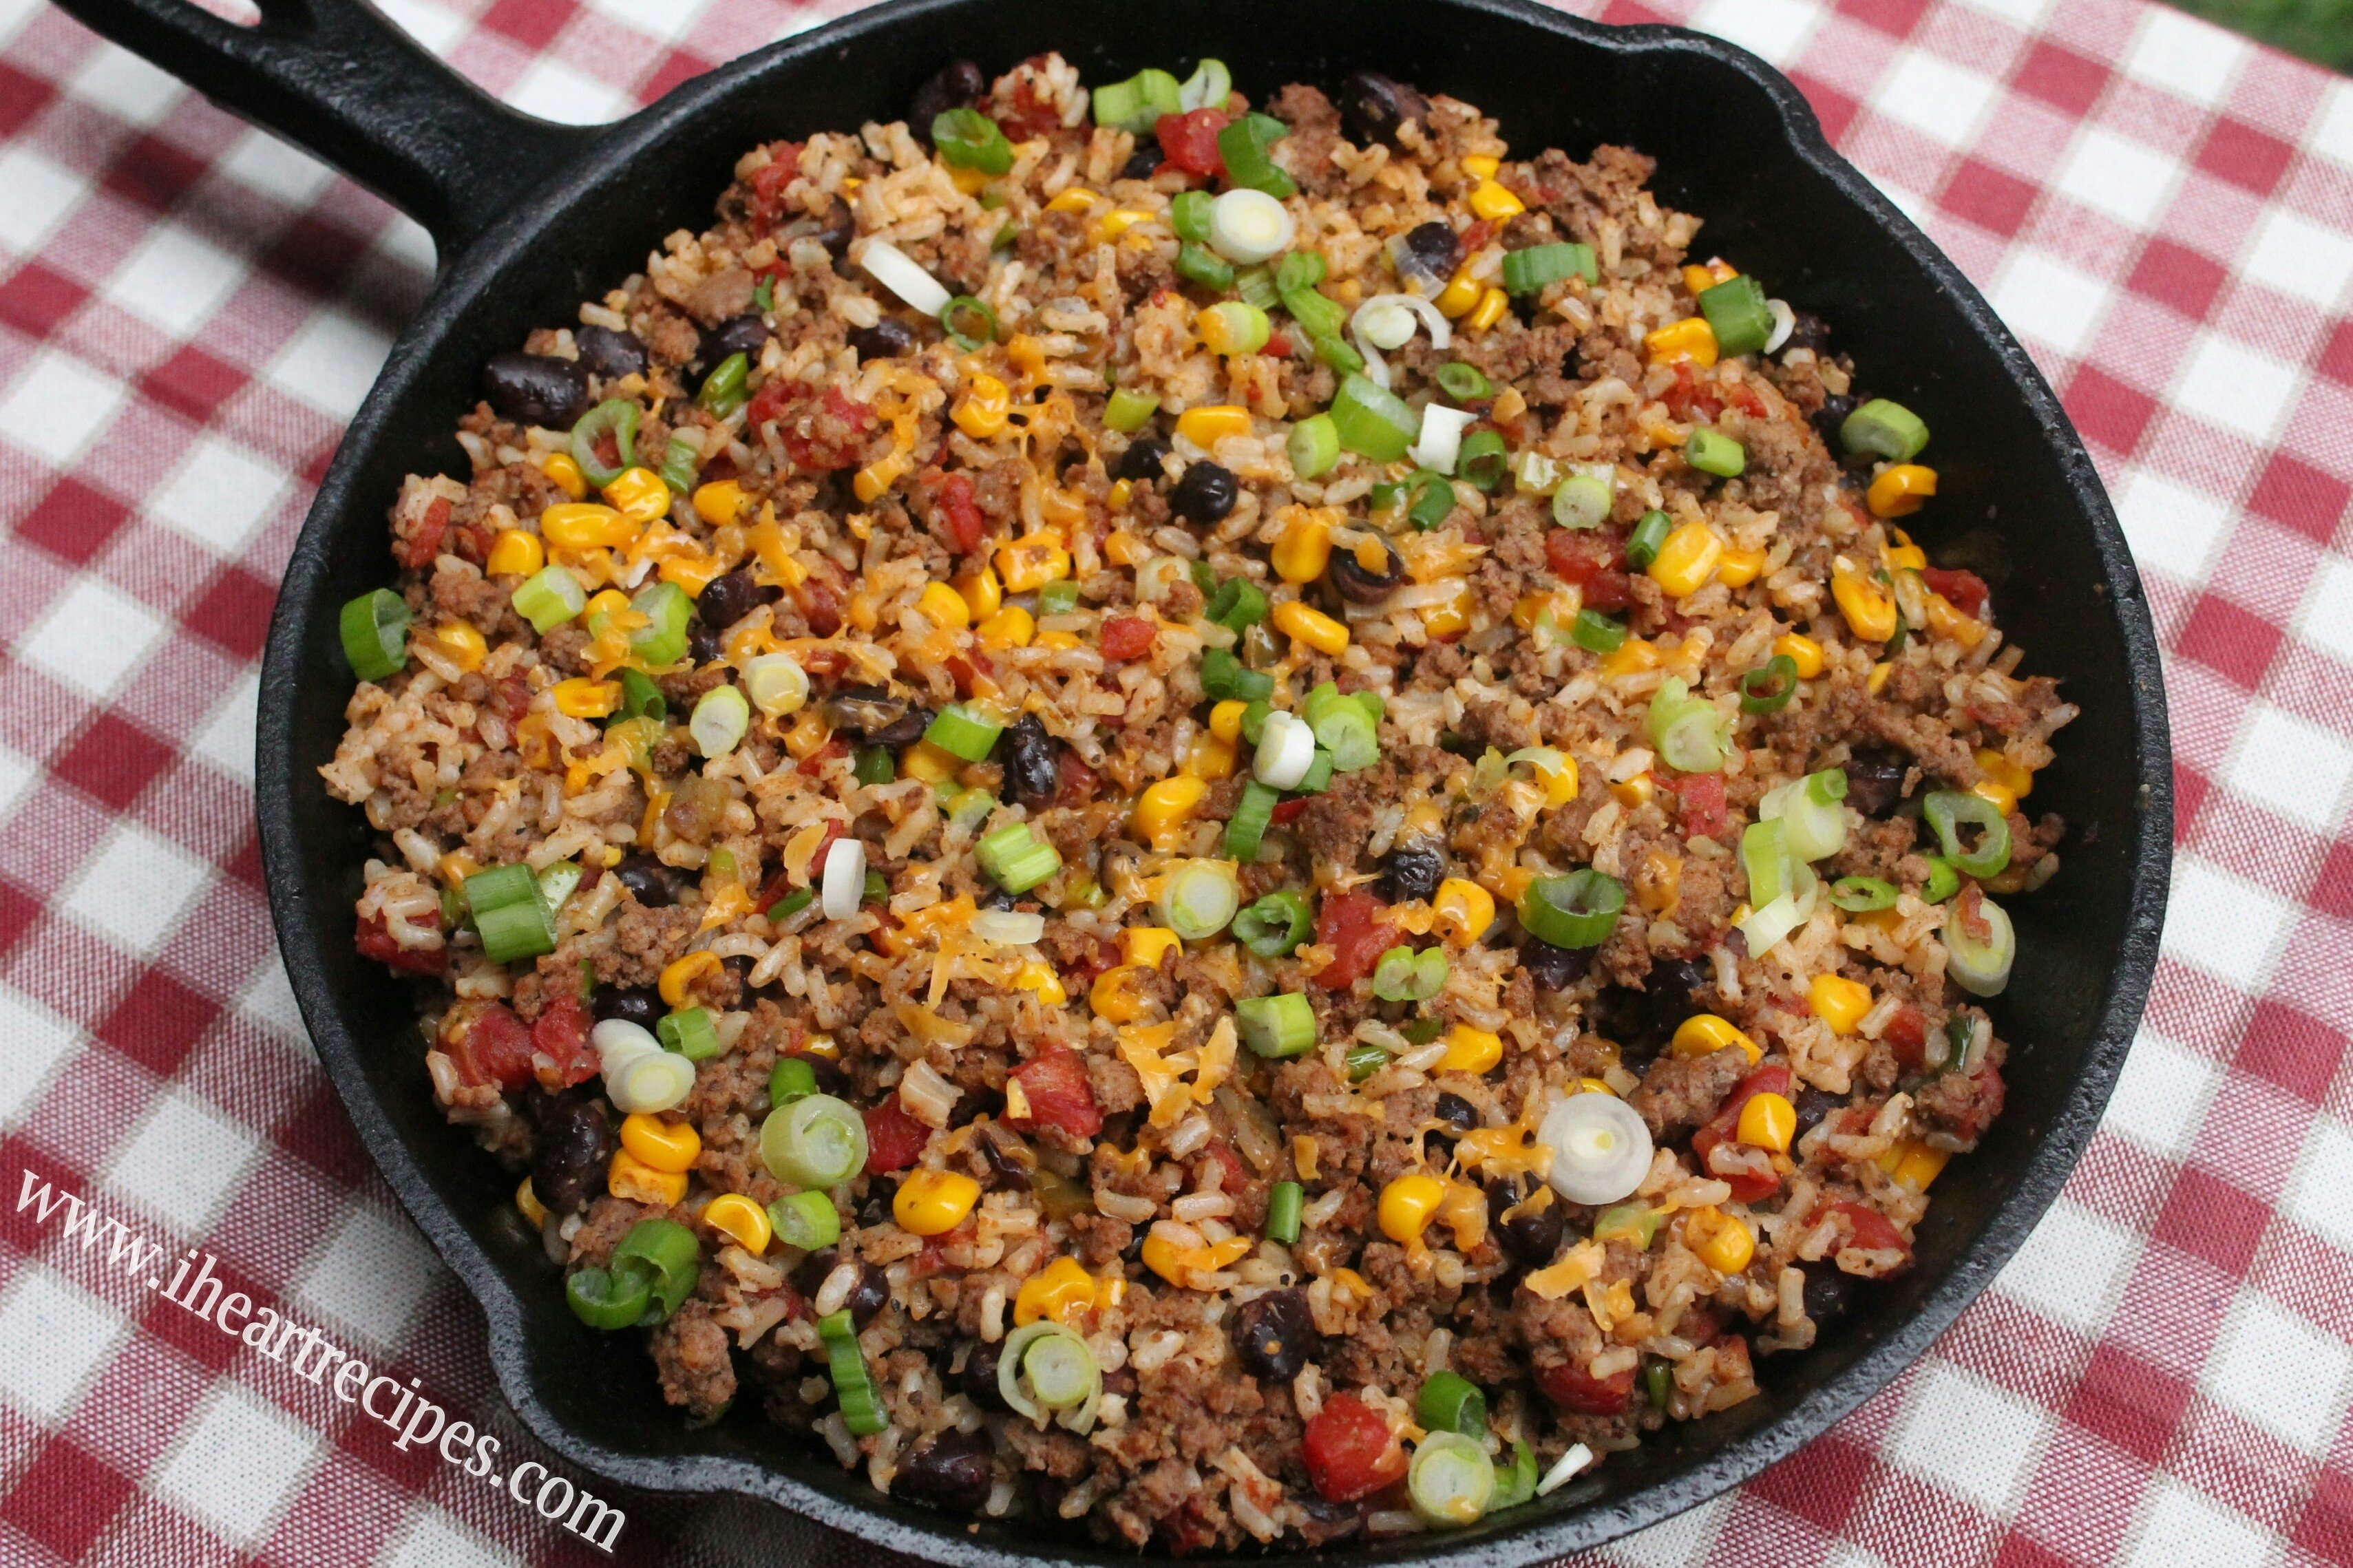 10 Stylish Quick Dinner Ideas With Ground Beef tex mex beef skillet i heart recipes 9 2020